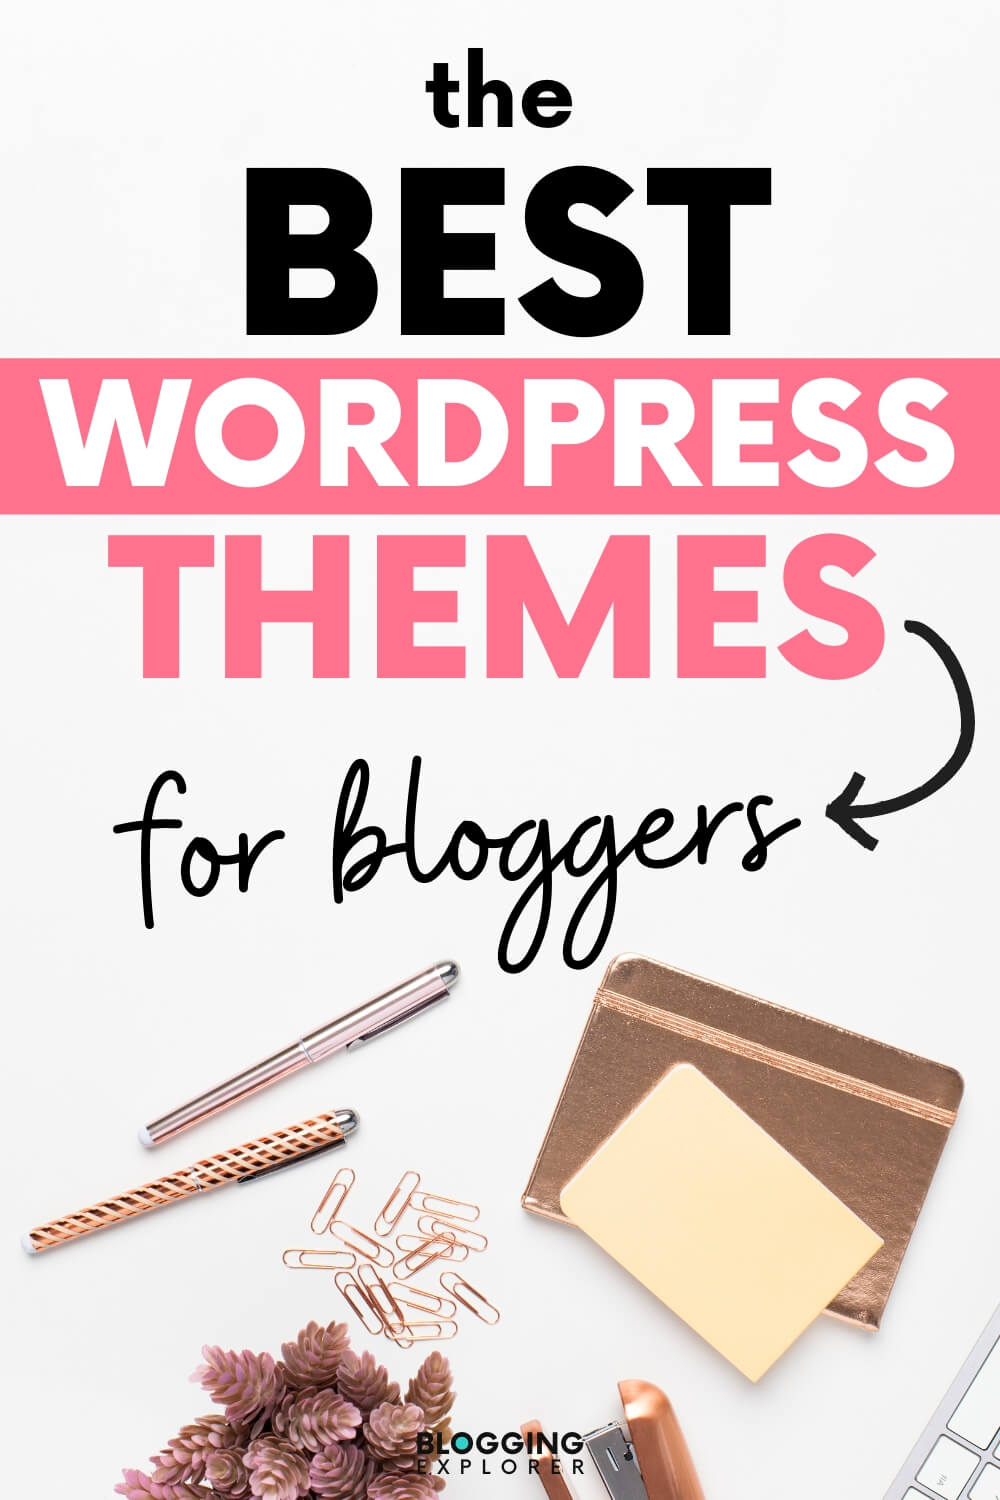 The Best WordPress Themes For Blogs 2020 (Free and Paid)